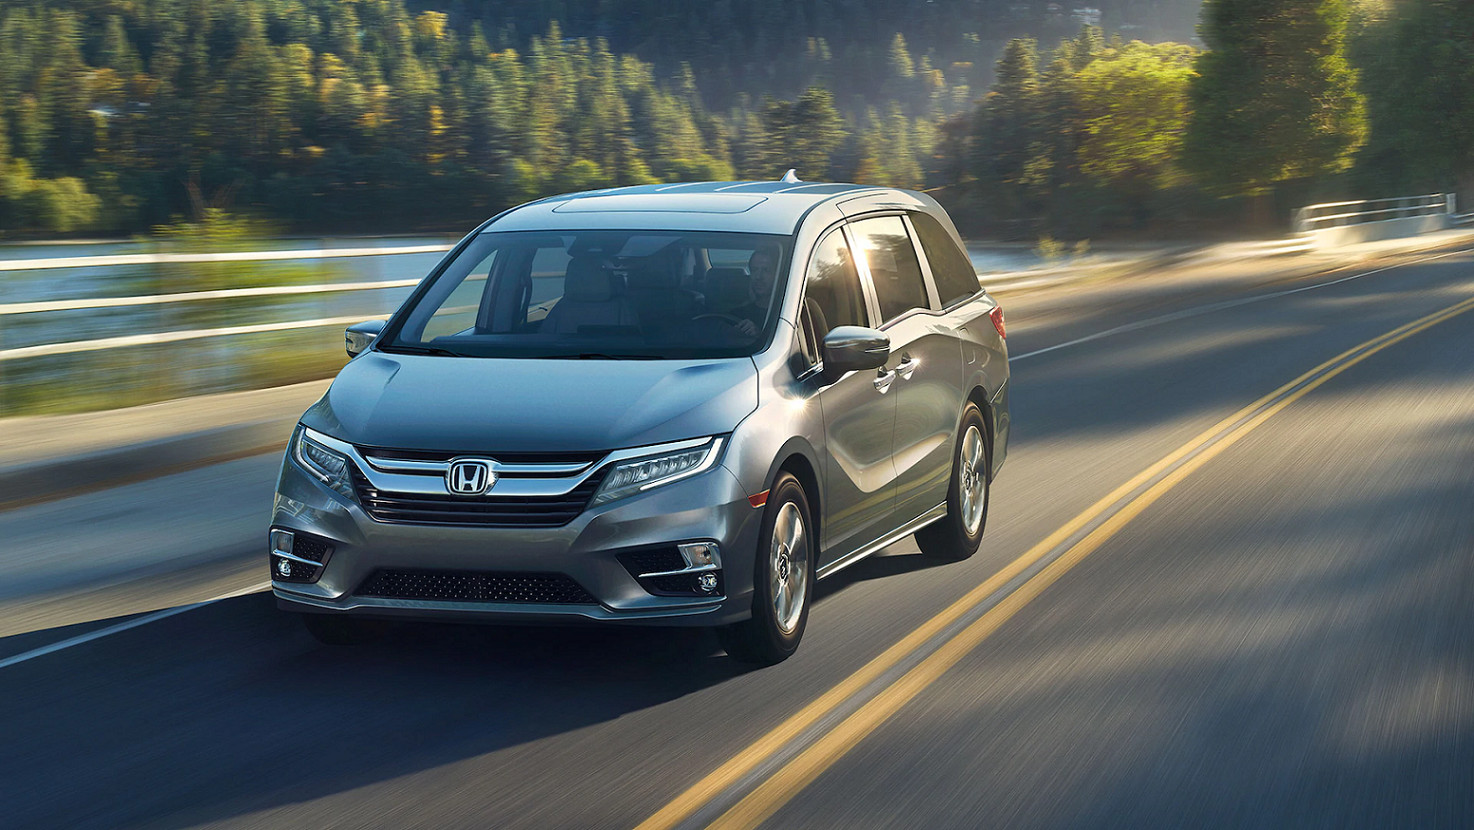 2020 Honda Odyssey for Sale near Ann Arbor, MI